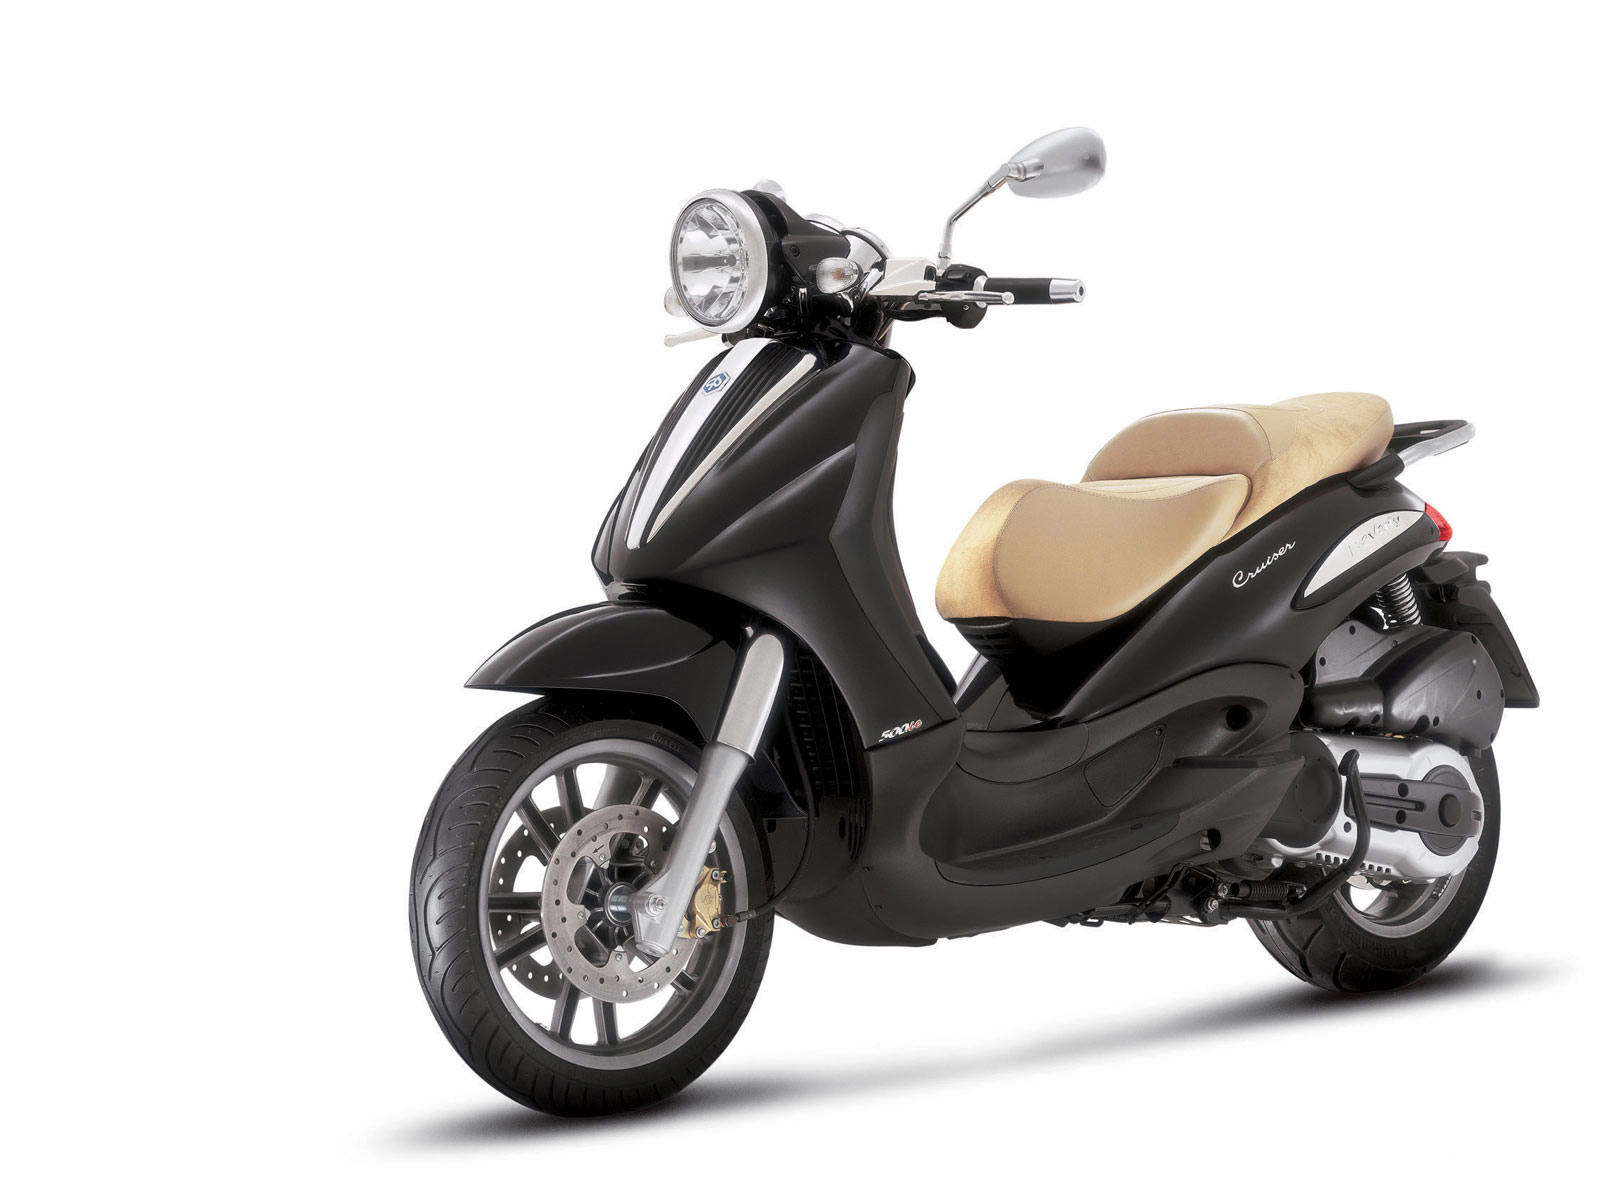 Piaggio Scooter Pictures. 2007 Beverly Cruiser 500